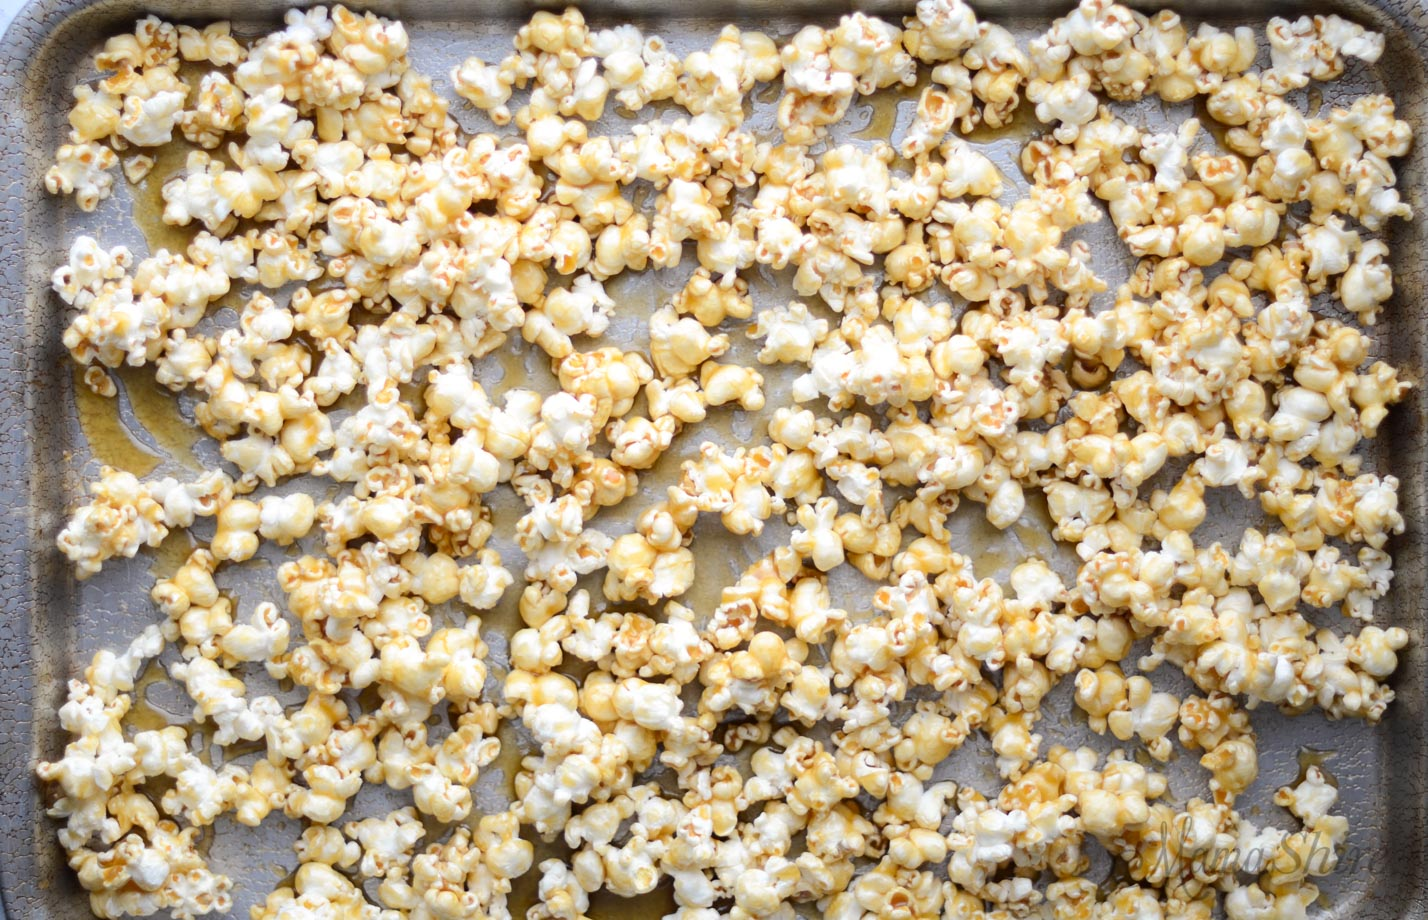 Homemade caramel corn before being baked.